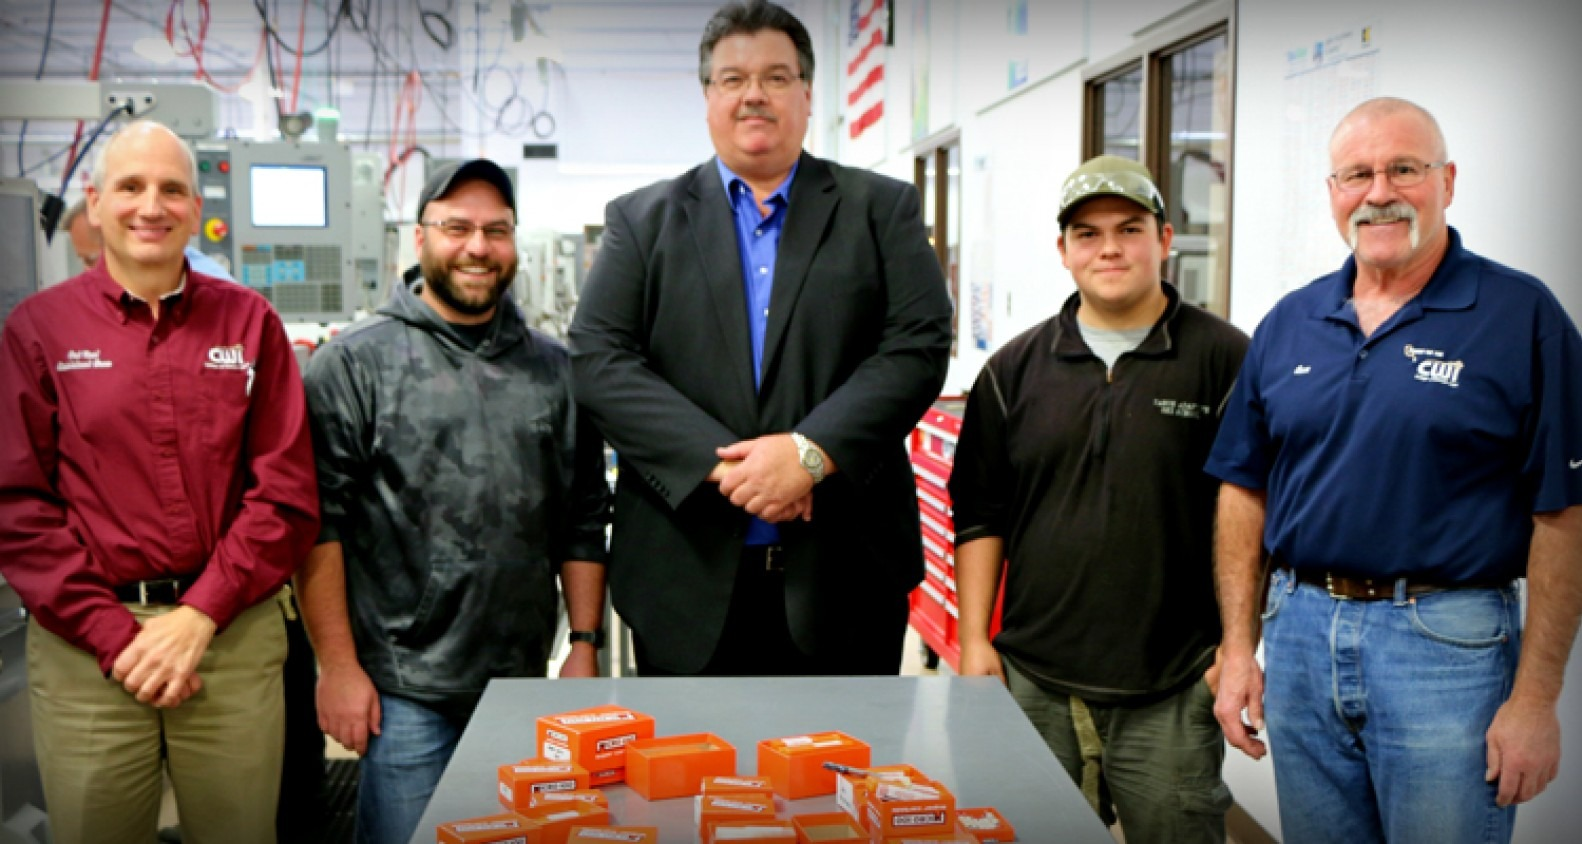 CWI Machine Tool Technology students and employees pictured with Craig Graf, Micro 100's Vice President of Manufacturing